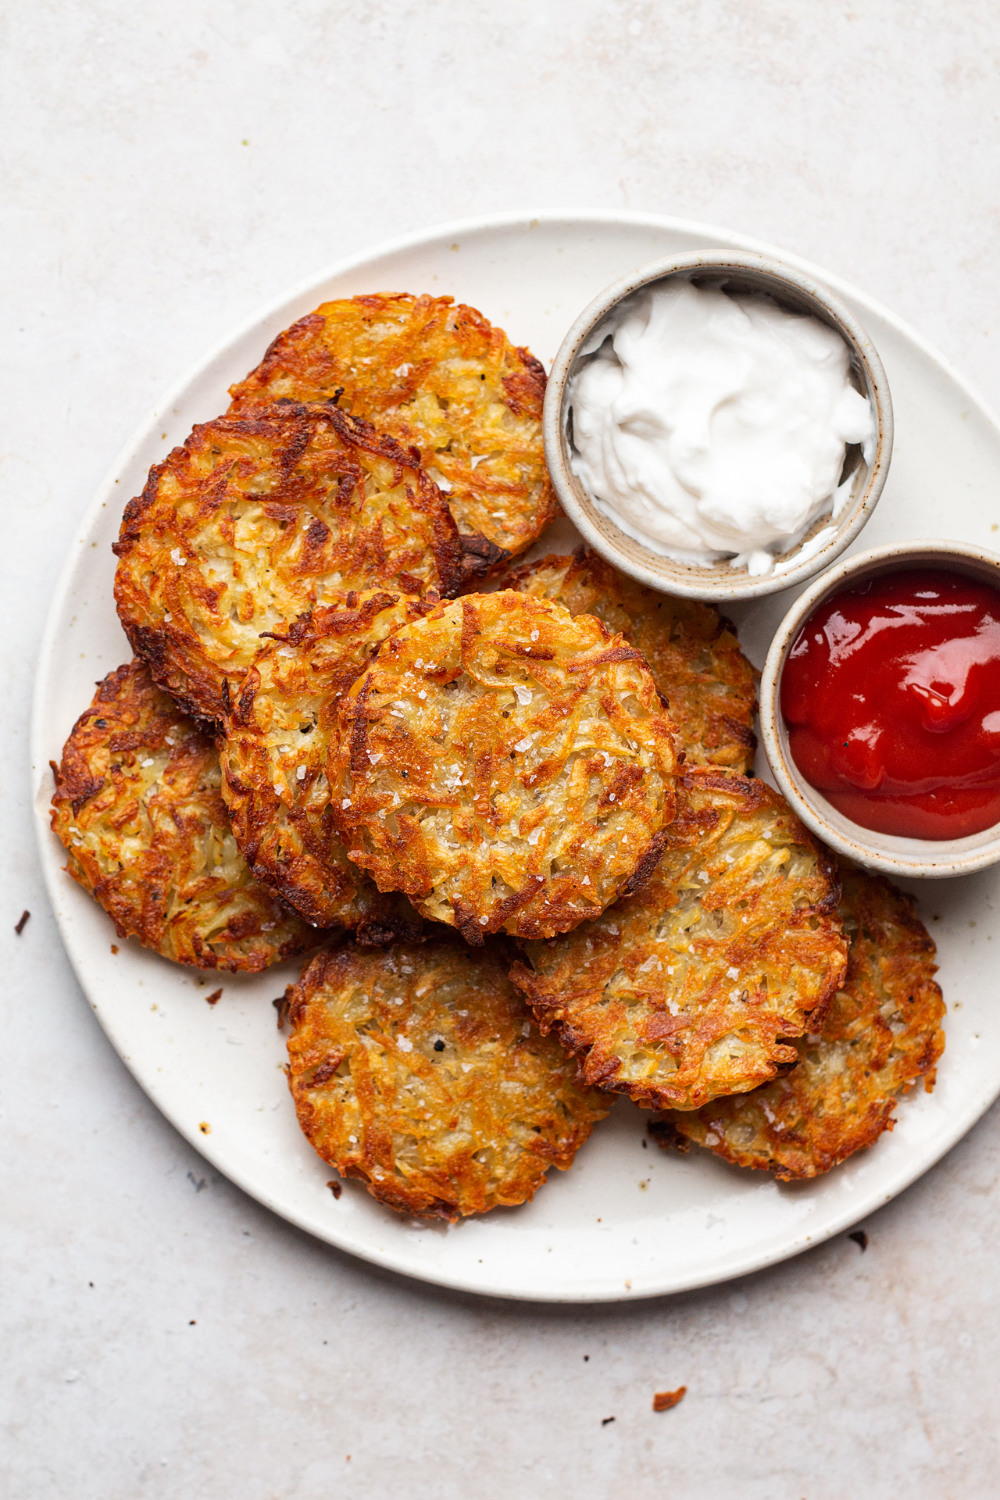 Vegan hash browns require 3 staple ingredients and they are baked rather than fried, which makes them way healthier yet just as crispy on the outside and soft on the inside. Naturally gluten-free.